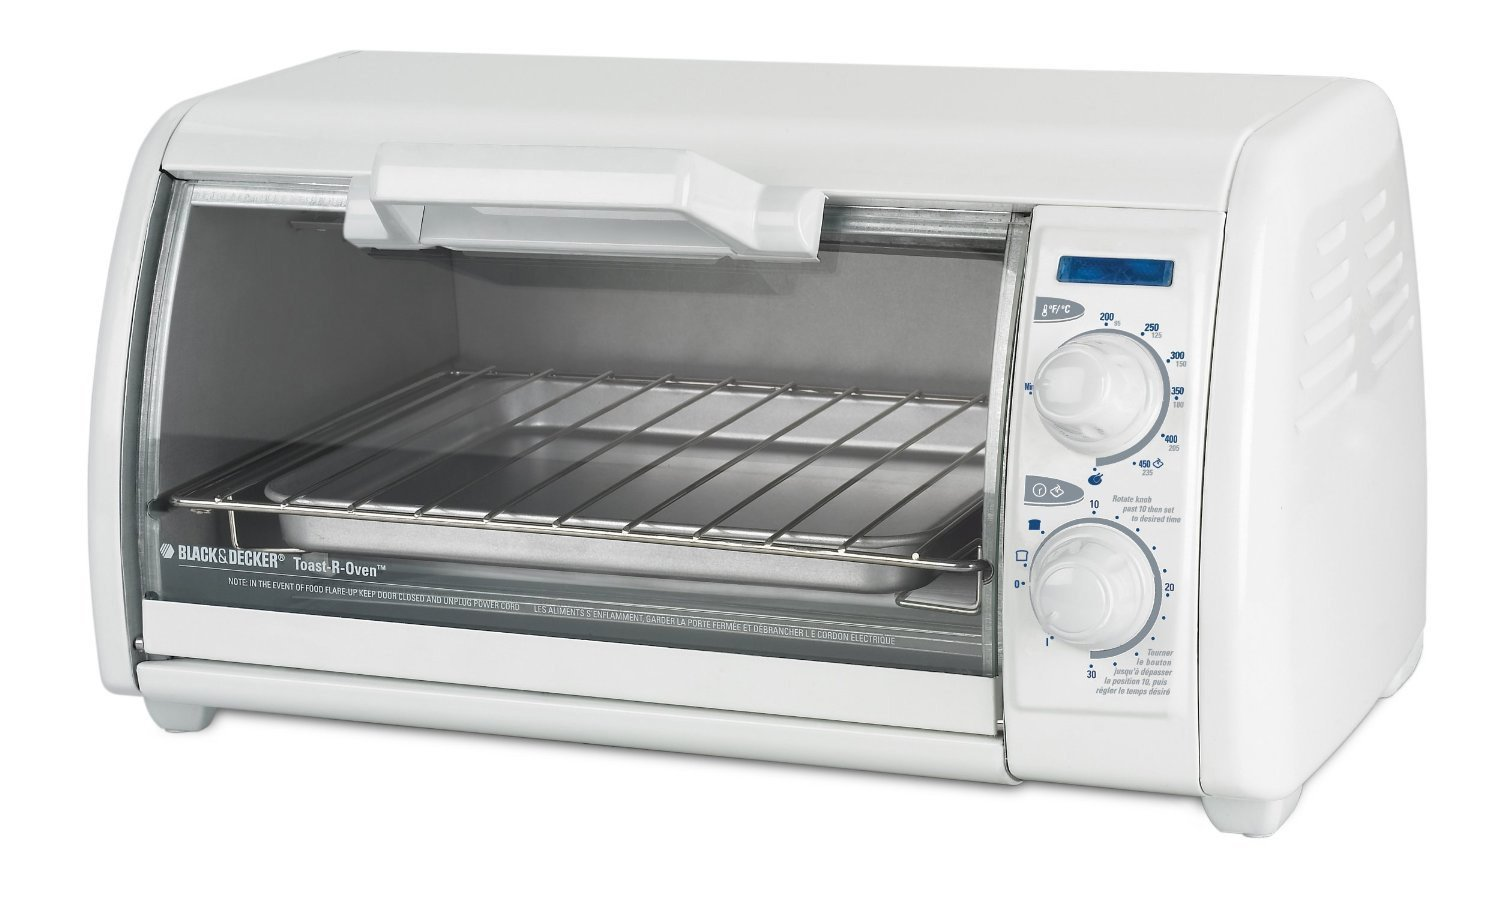 Black And Decker Toaster Oven White Tro420 Lp Gas Amp Supplies